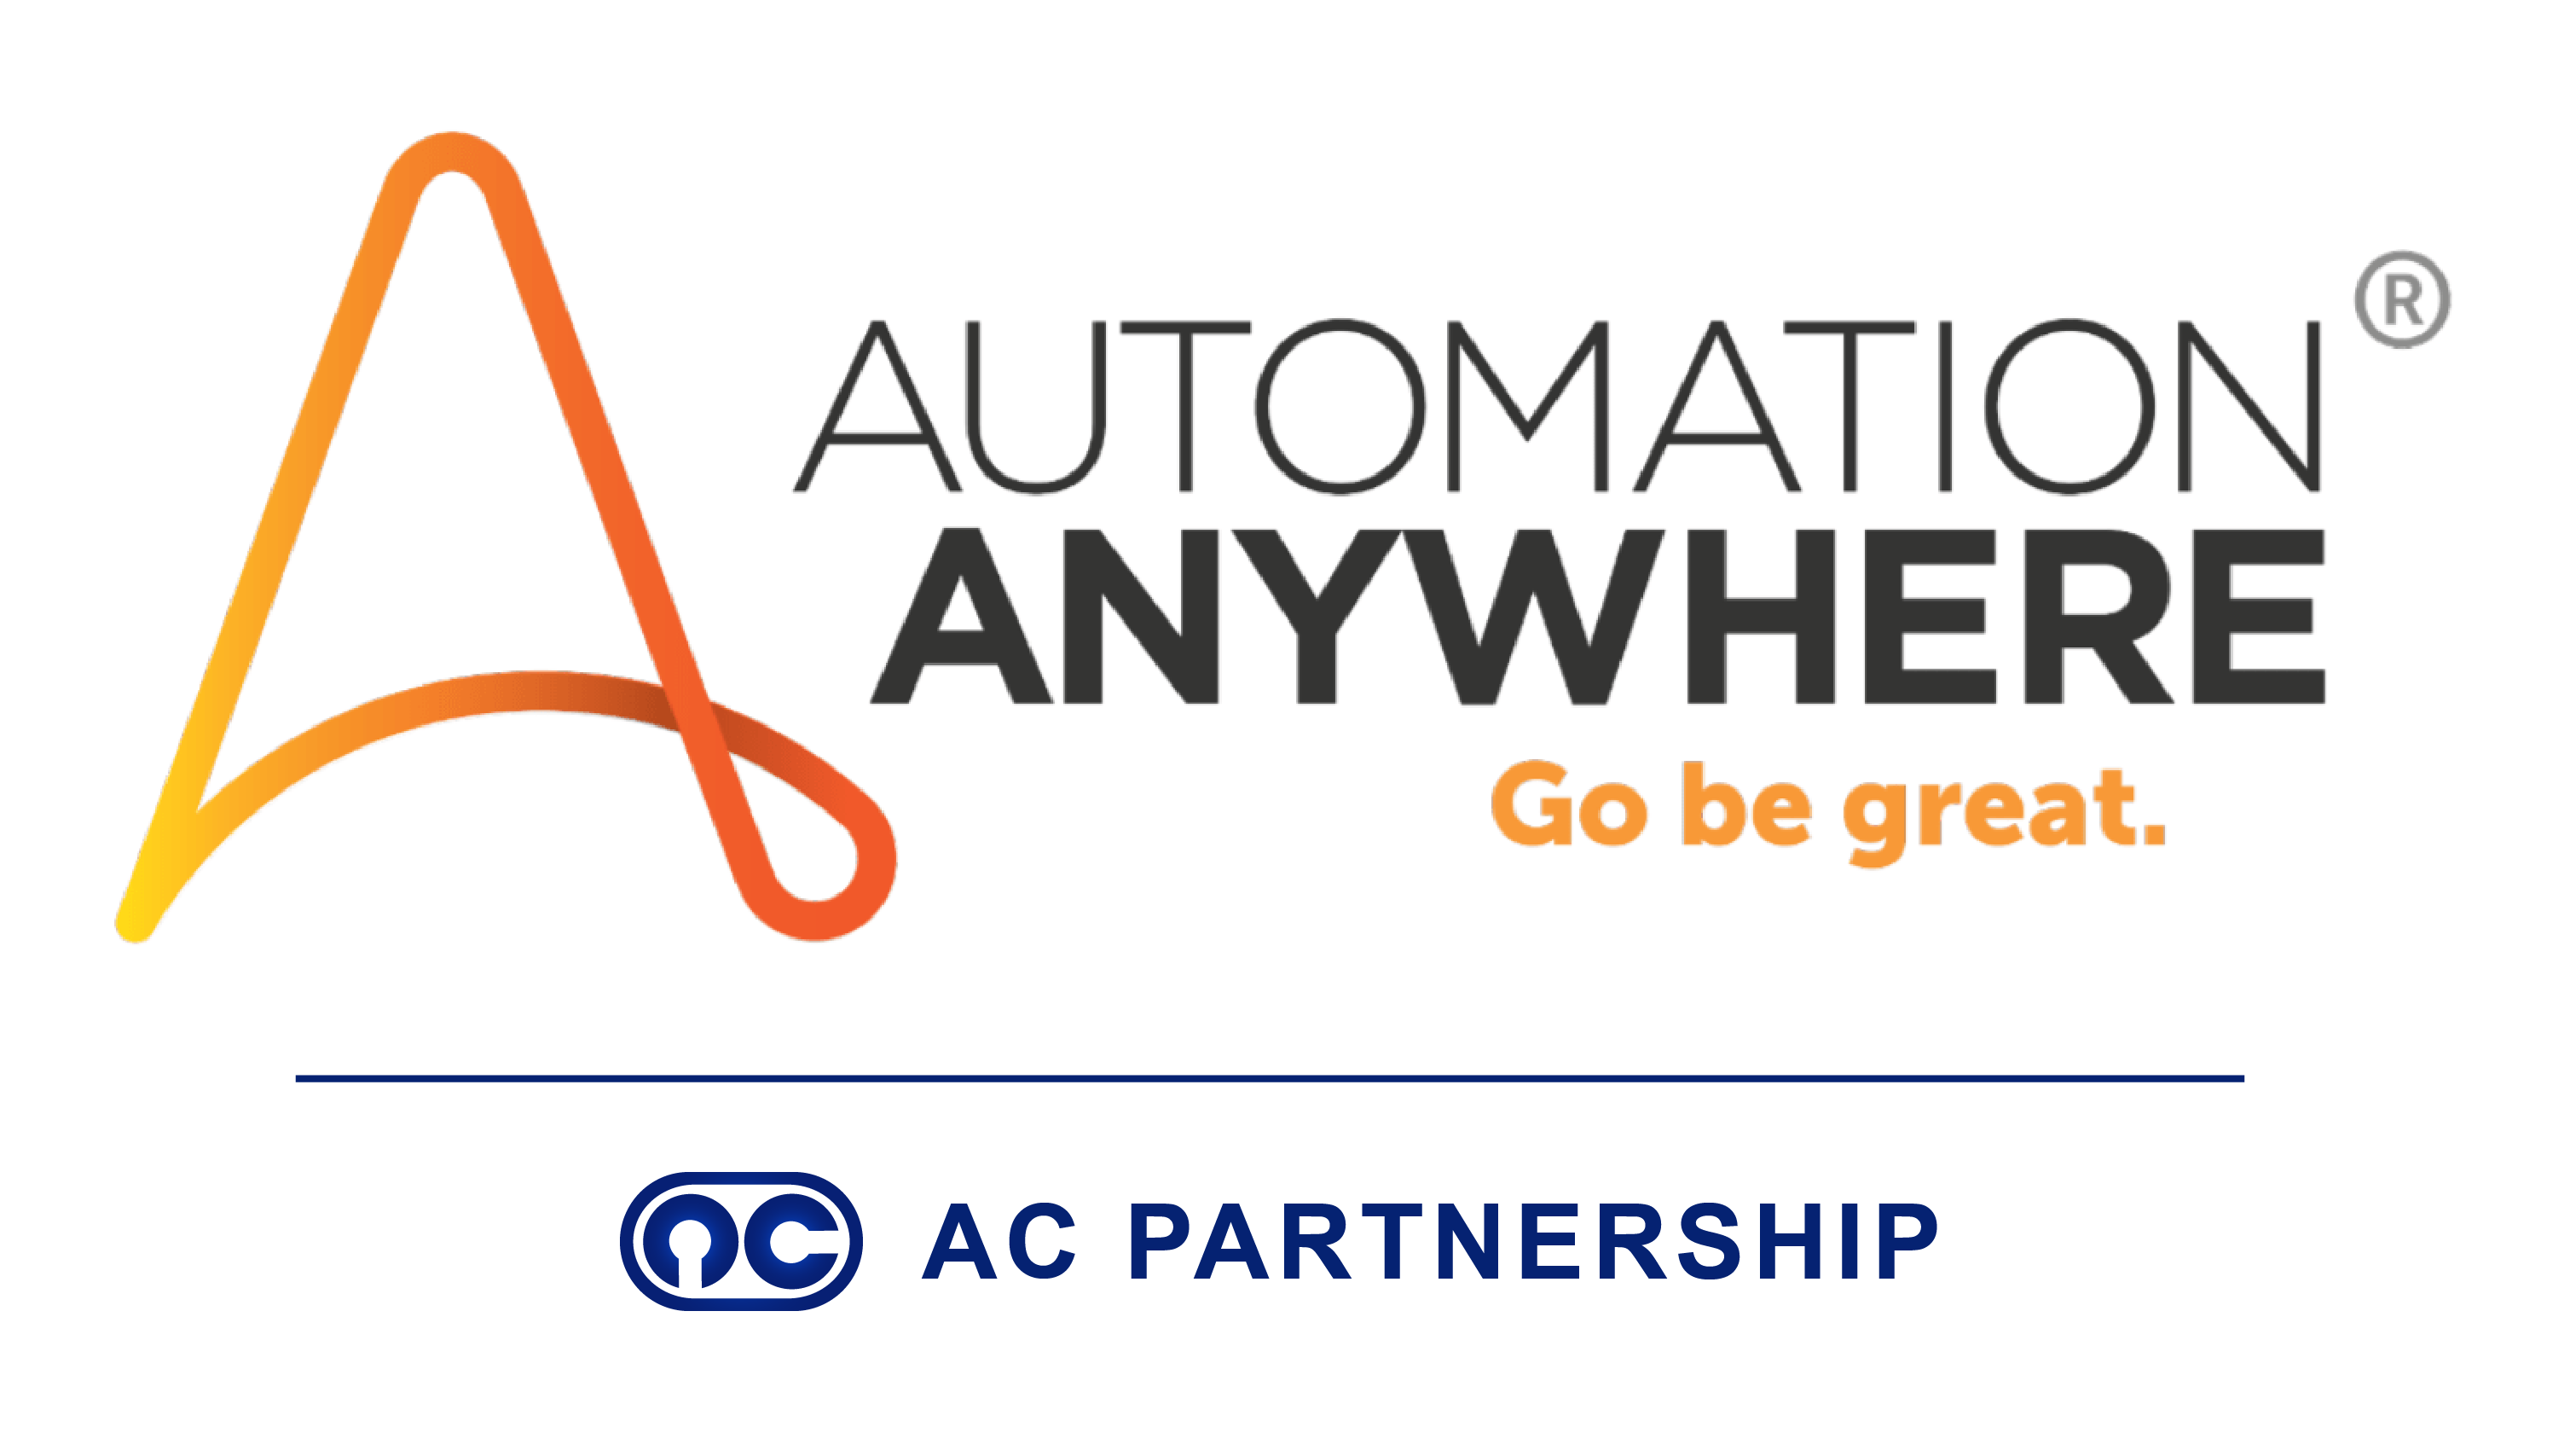 Our New Partnership: Automation Anywhere